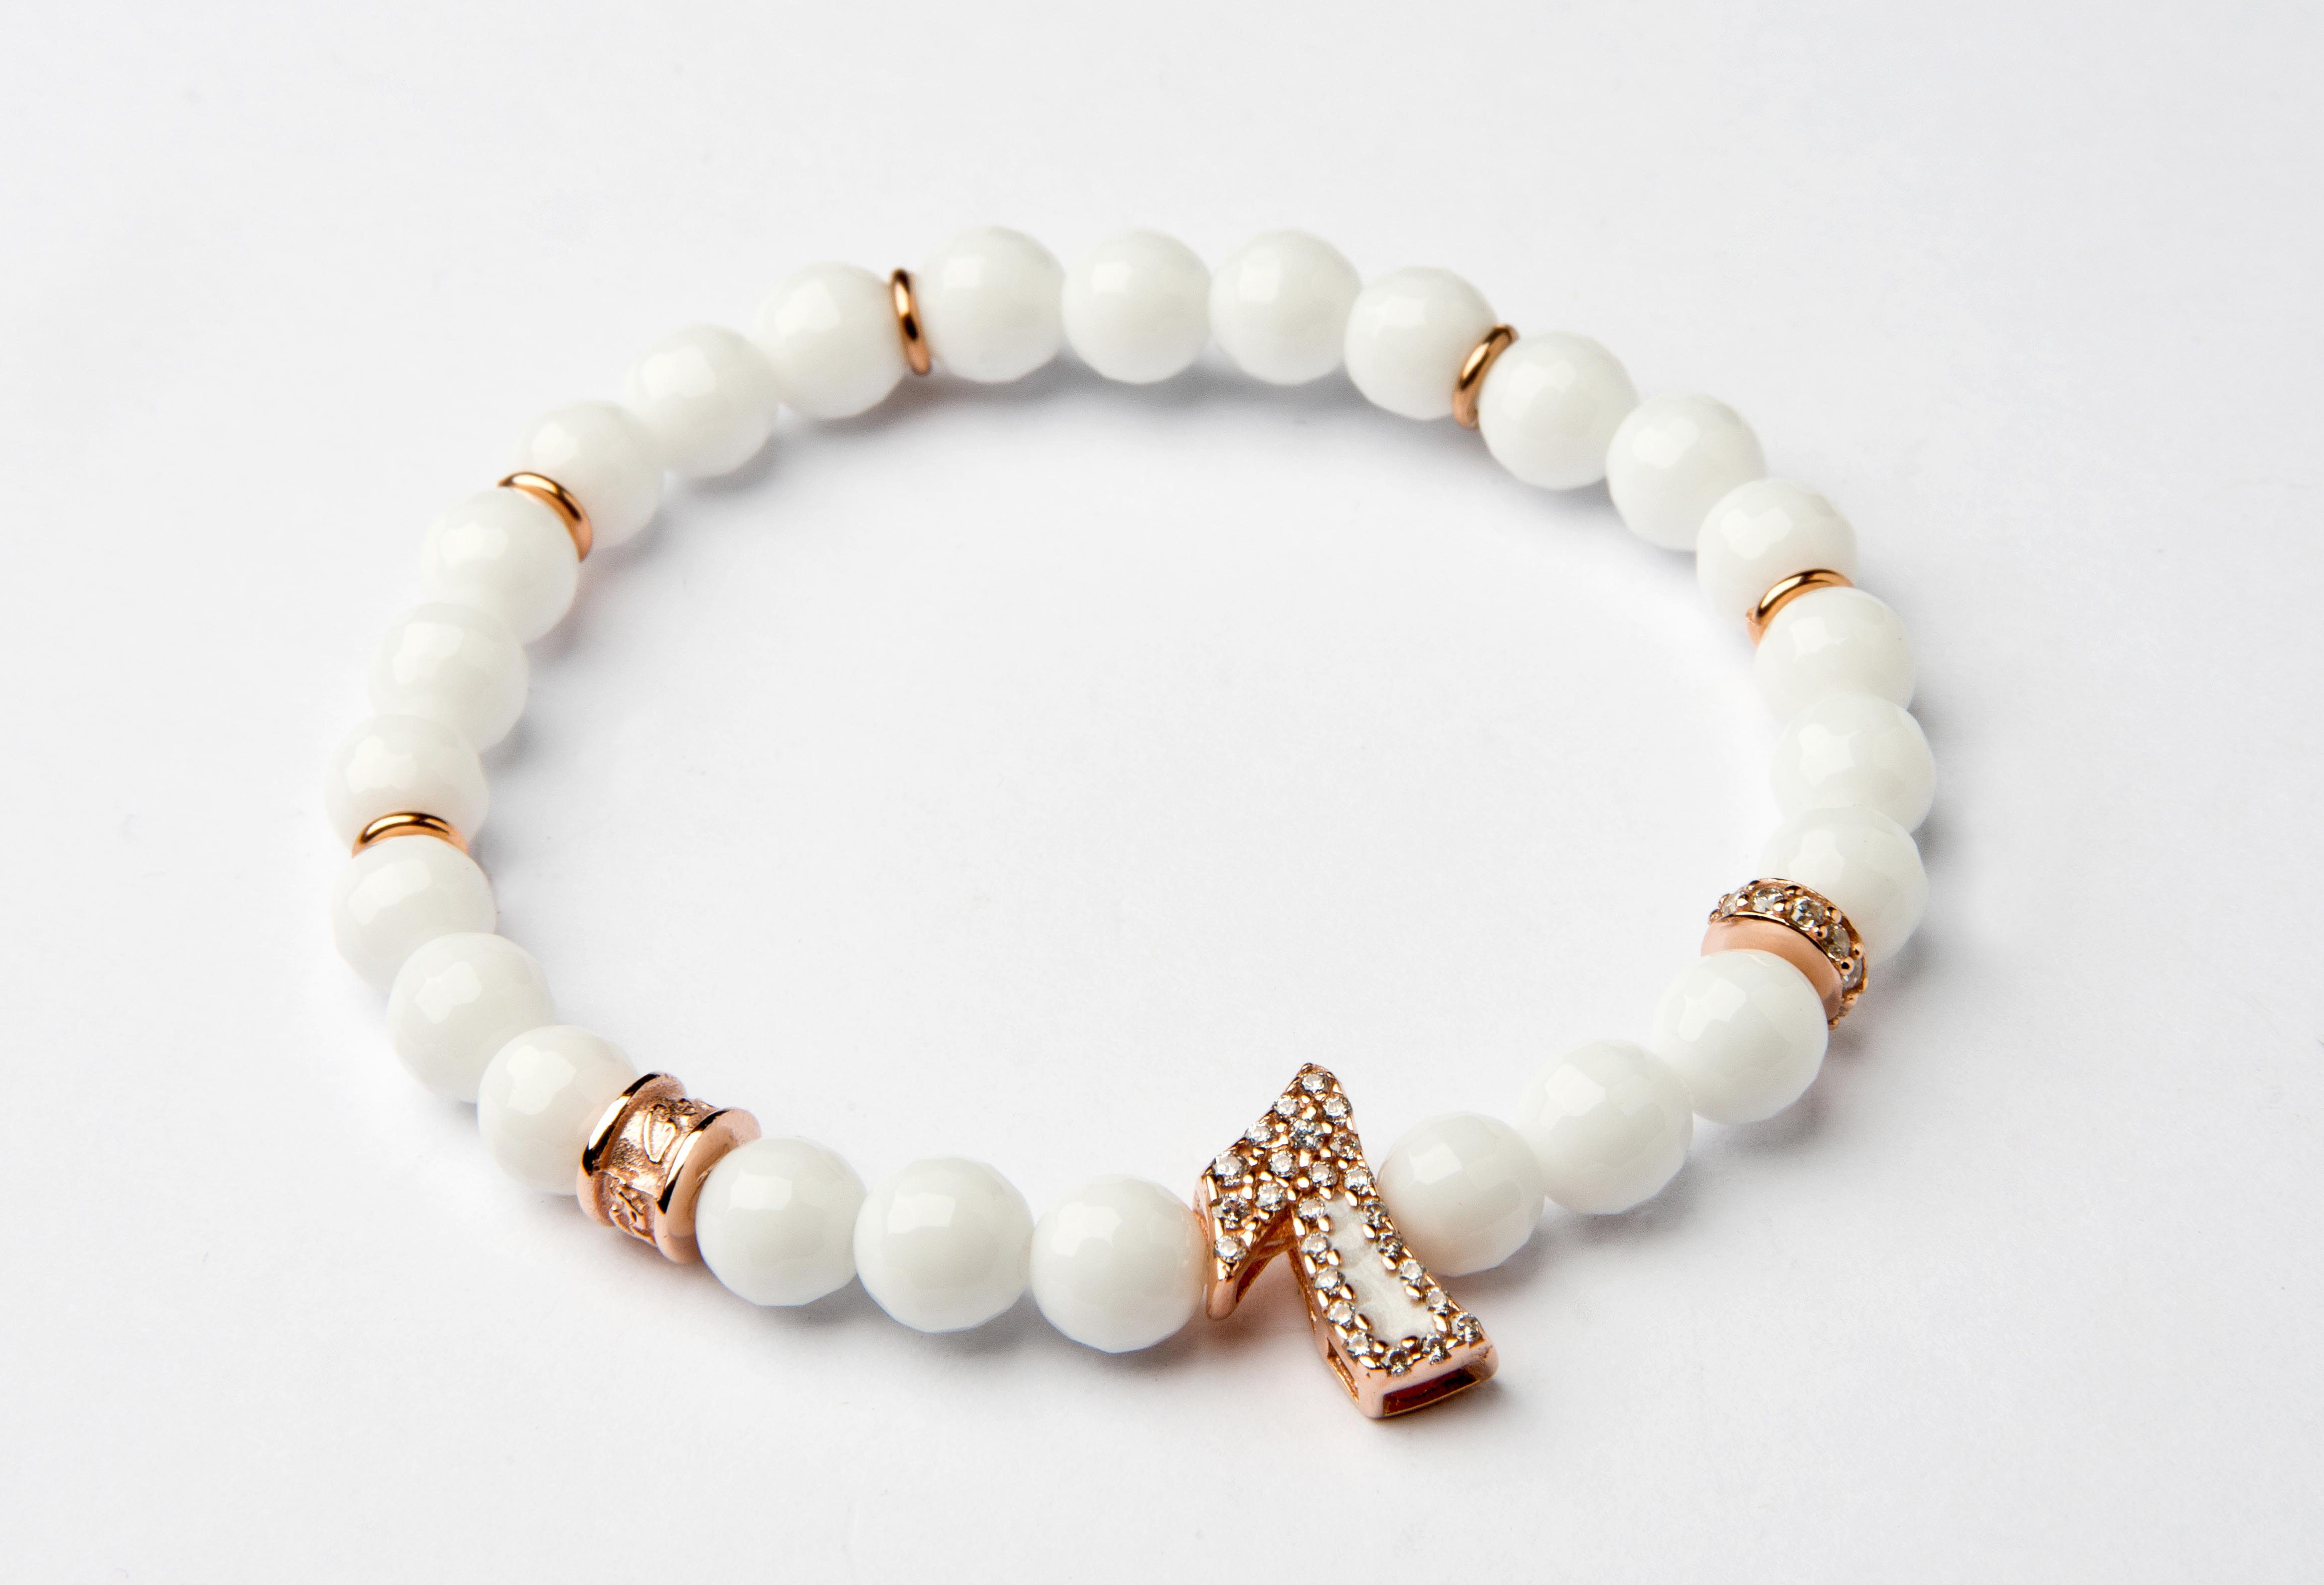 Number: 7 Rose Gold, Mother Of Pearl, Ematite - 7RGWH